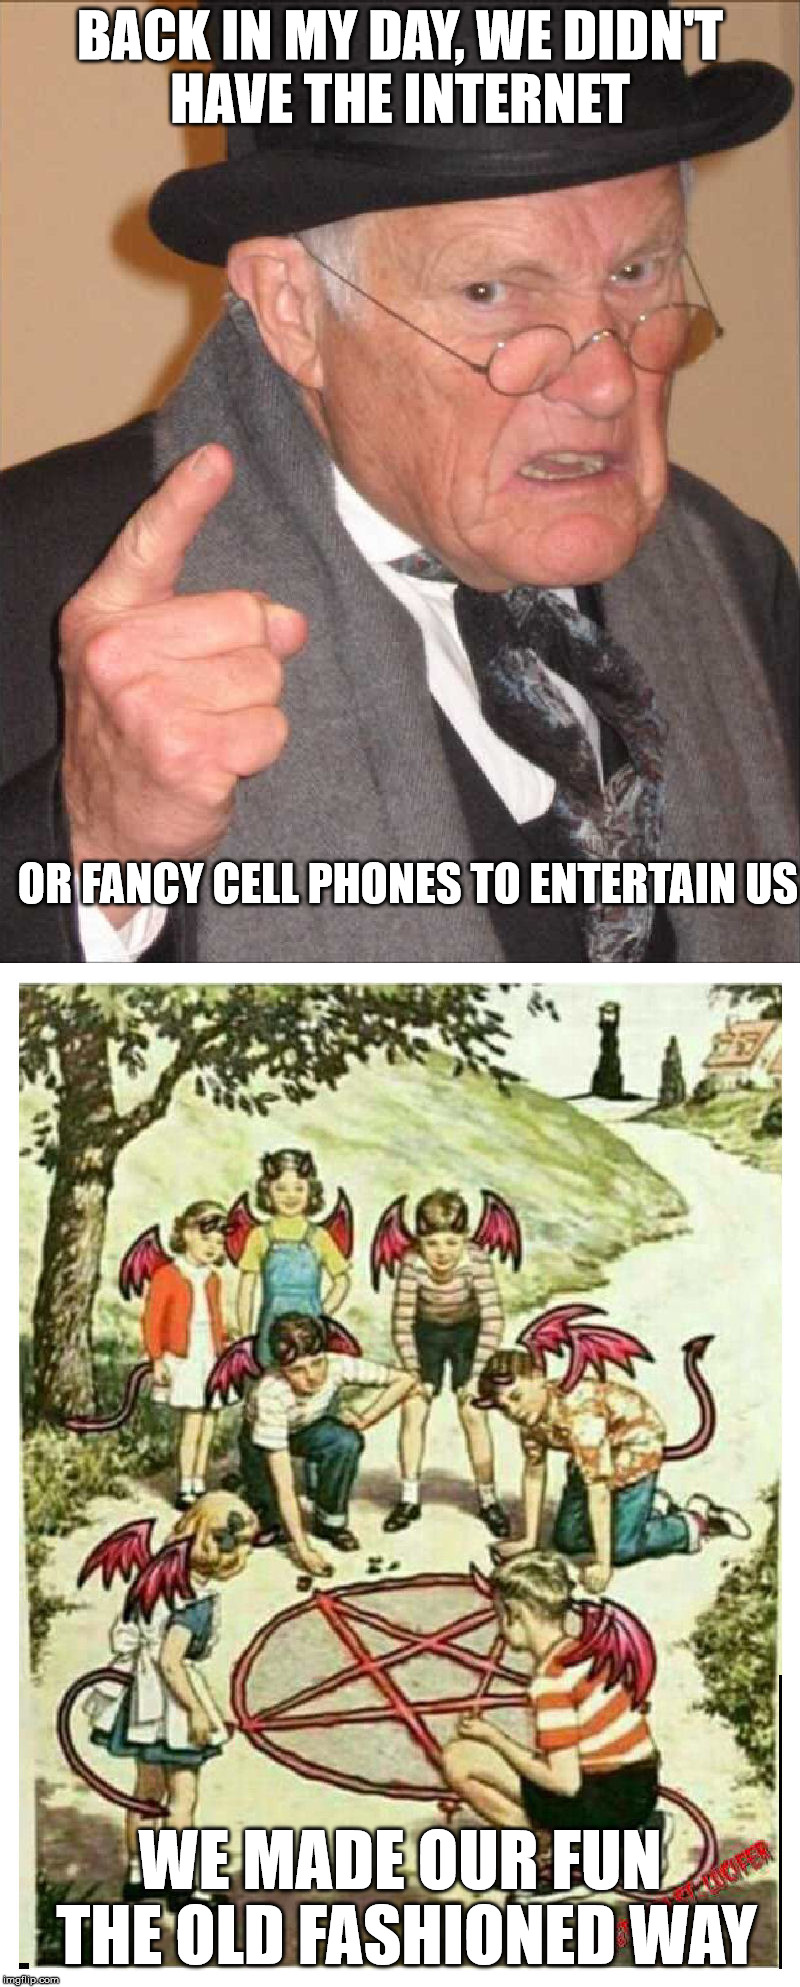 Today's kids will never know the thrill of shooting marbles on a pentagram | BACK IN MY DAY, WE DIDN'T HAVE THE INTERNET WE MADE OUR FUN THE OLD FASHIONED WAY OR FANCY CELL PHONES TO ENTERTAIN US | image tagged in back in my day,fun,internet,cell phones,devil worship,having fun | made w/ Imgflip meme maker